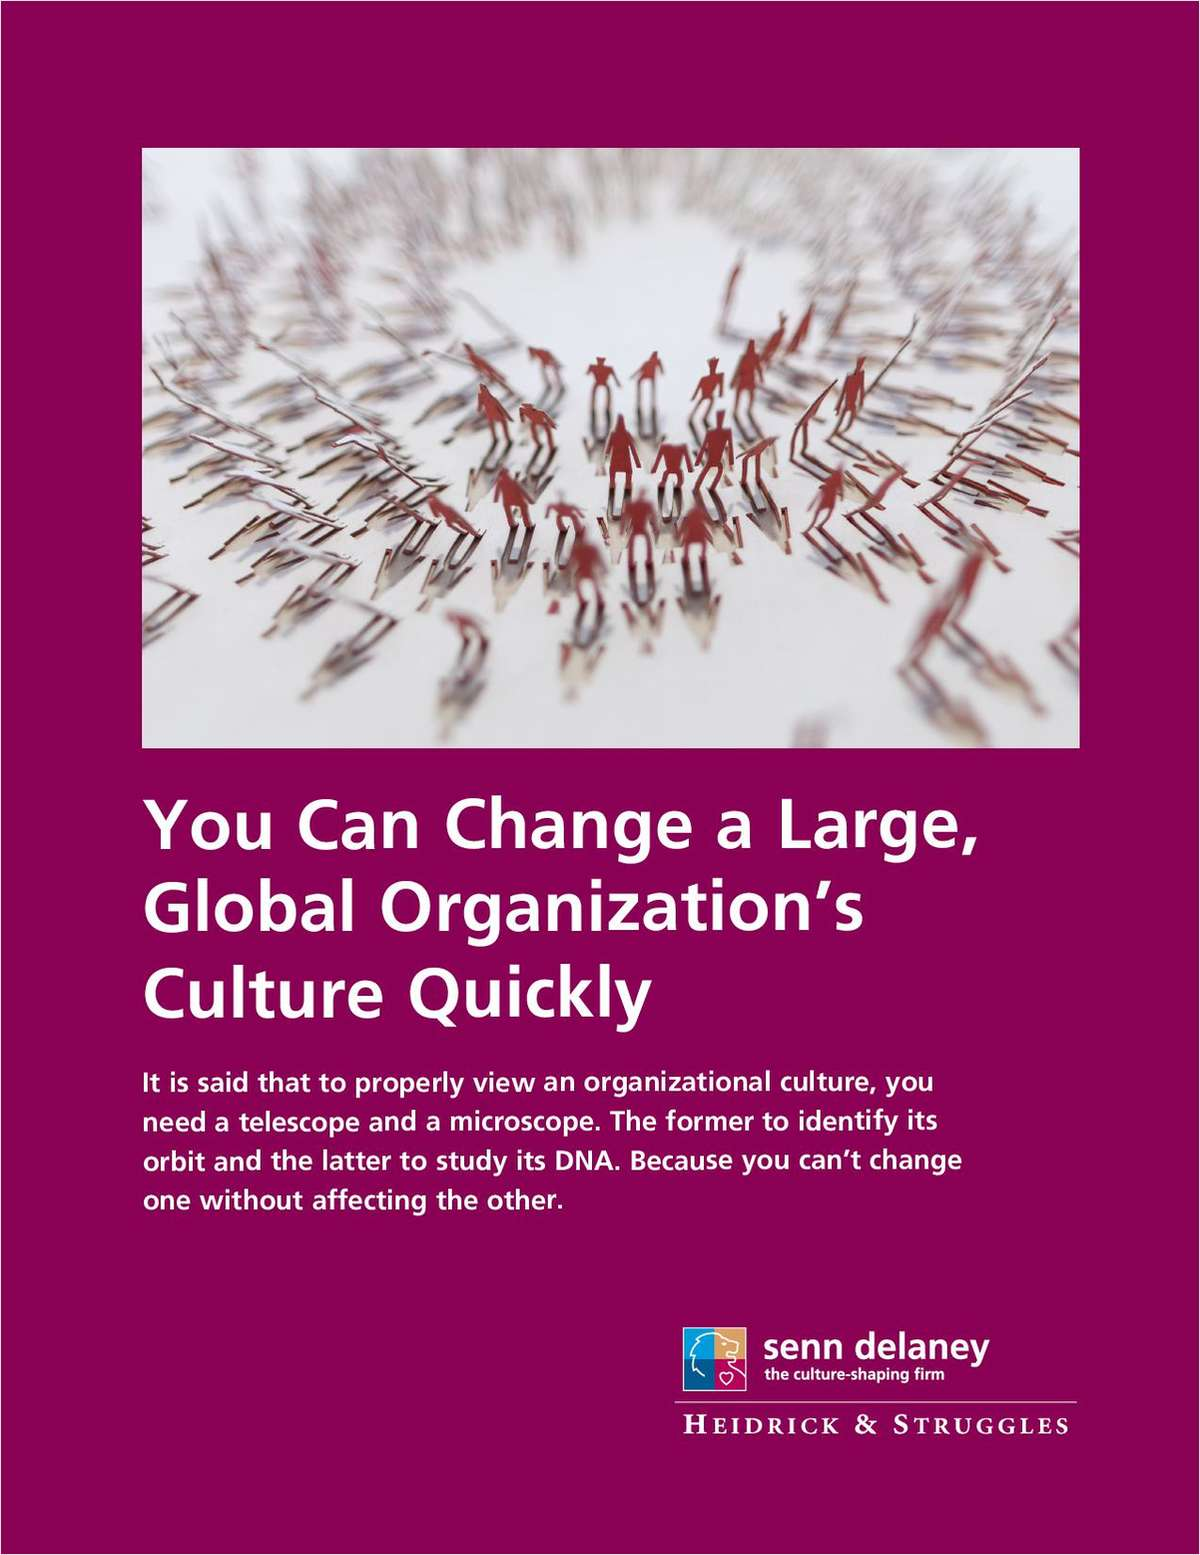 You Can Change a Large, Global Organization's Culture Quickly